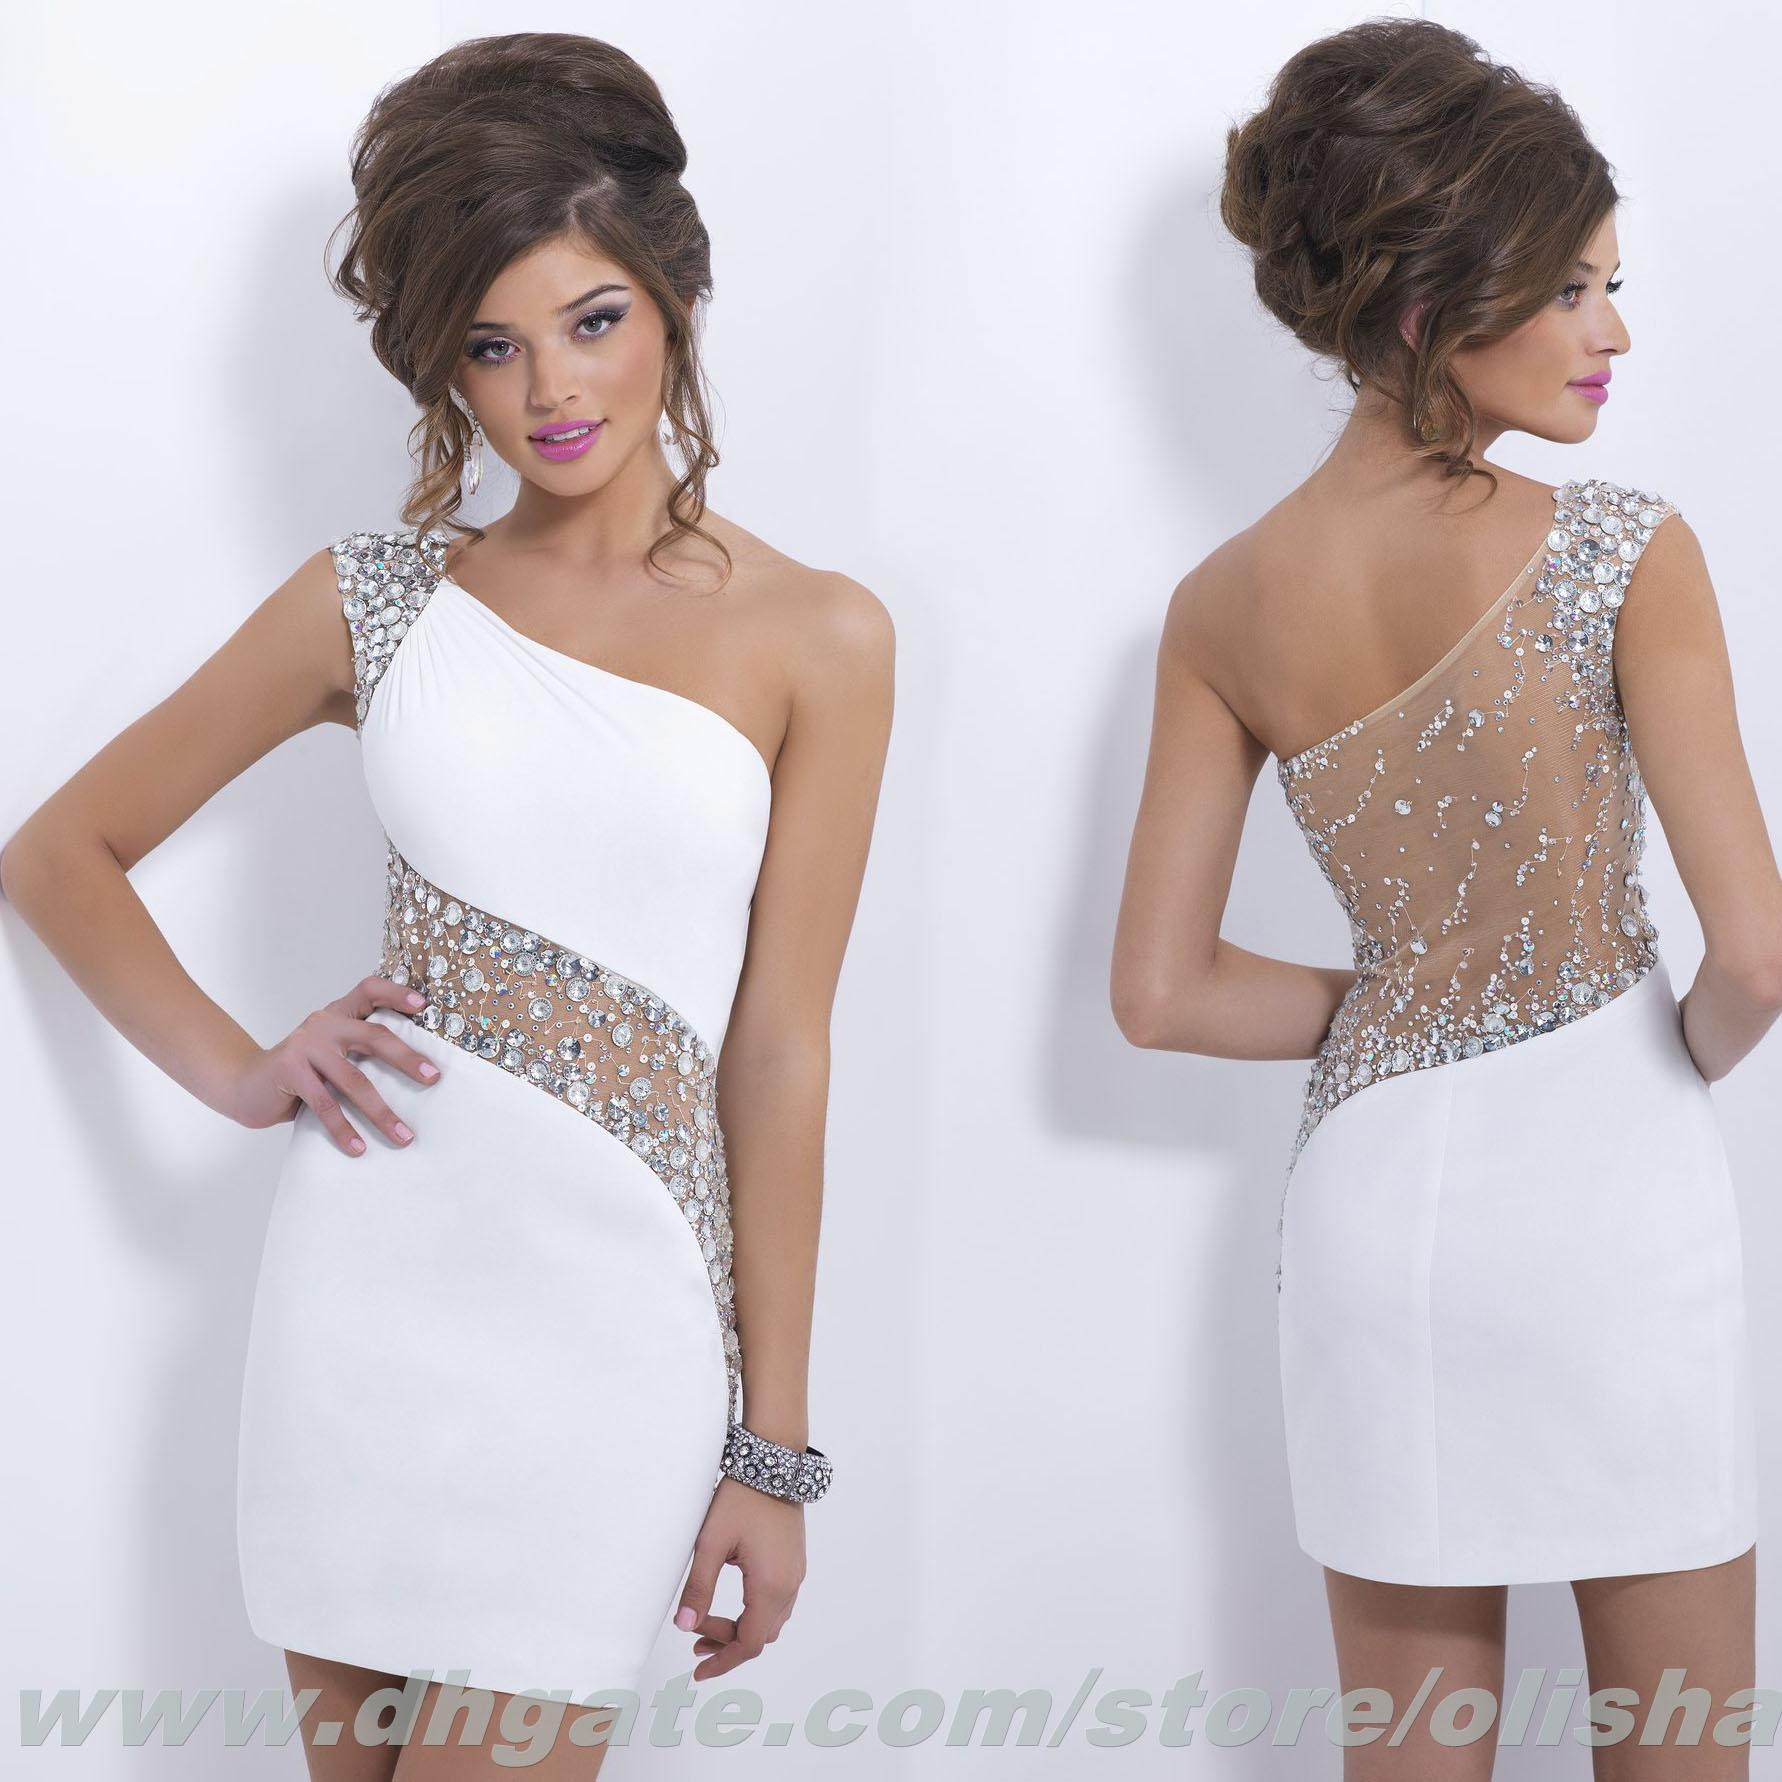 Short Mini Homecoming Dress 2016 With One Shoulder Prom Dresses ...